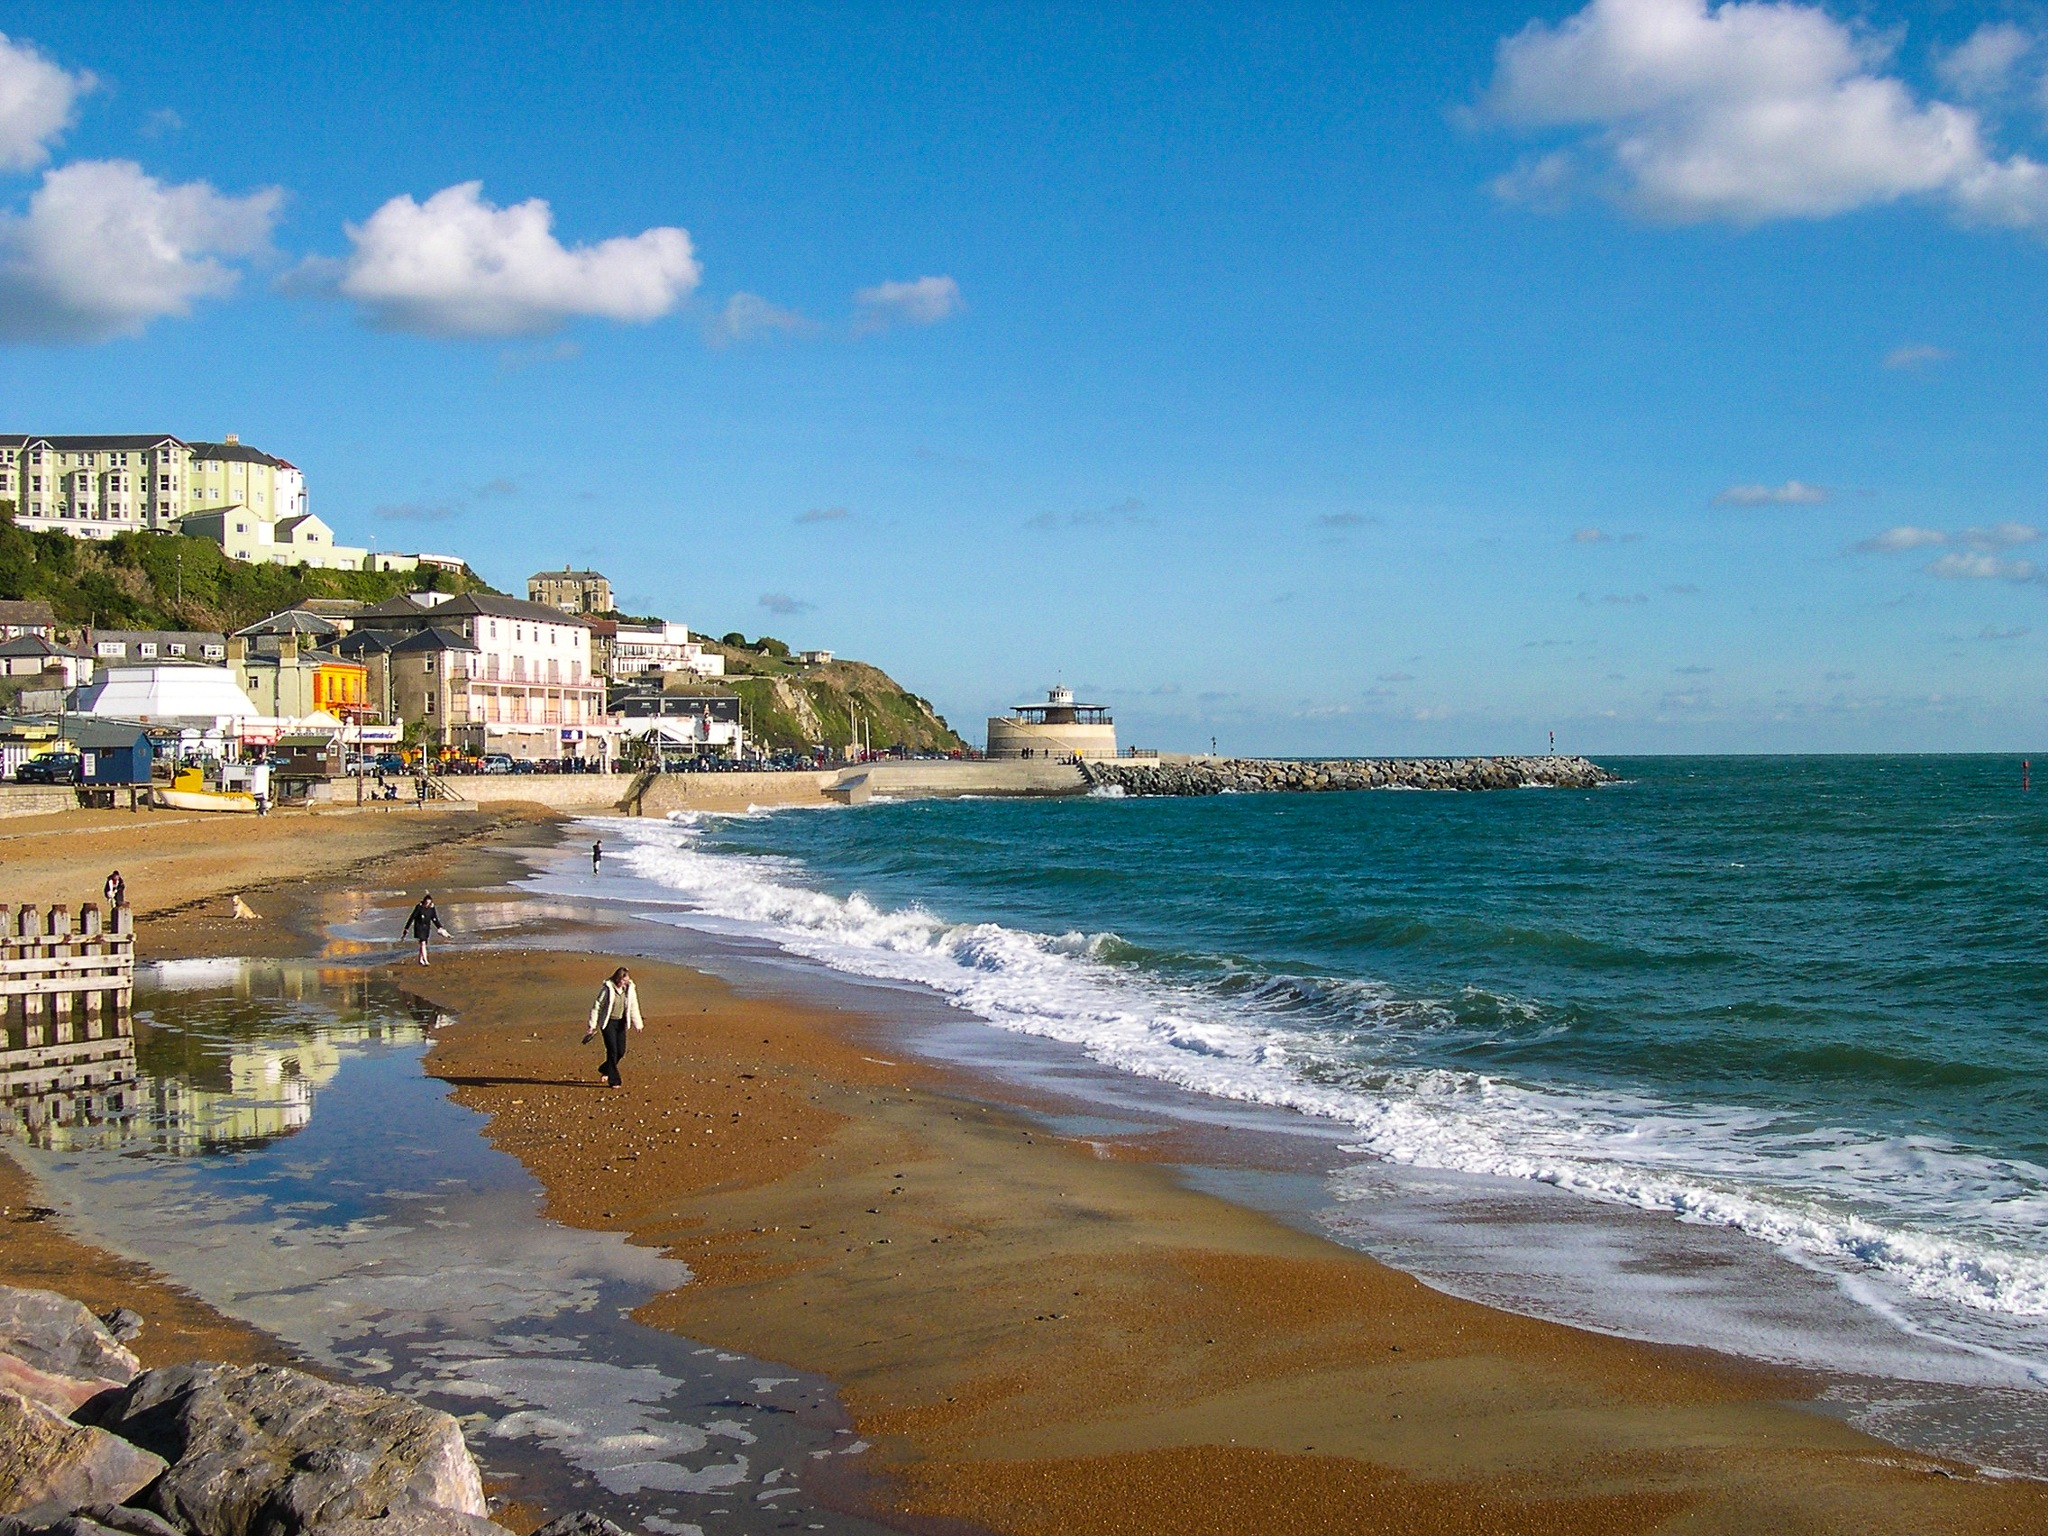 Ventnor Winter Sun by Slimboyfat